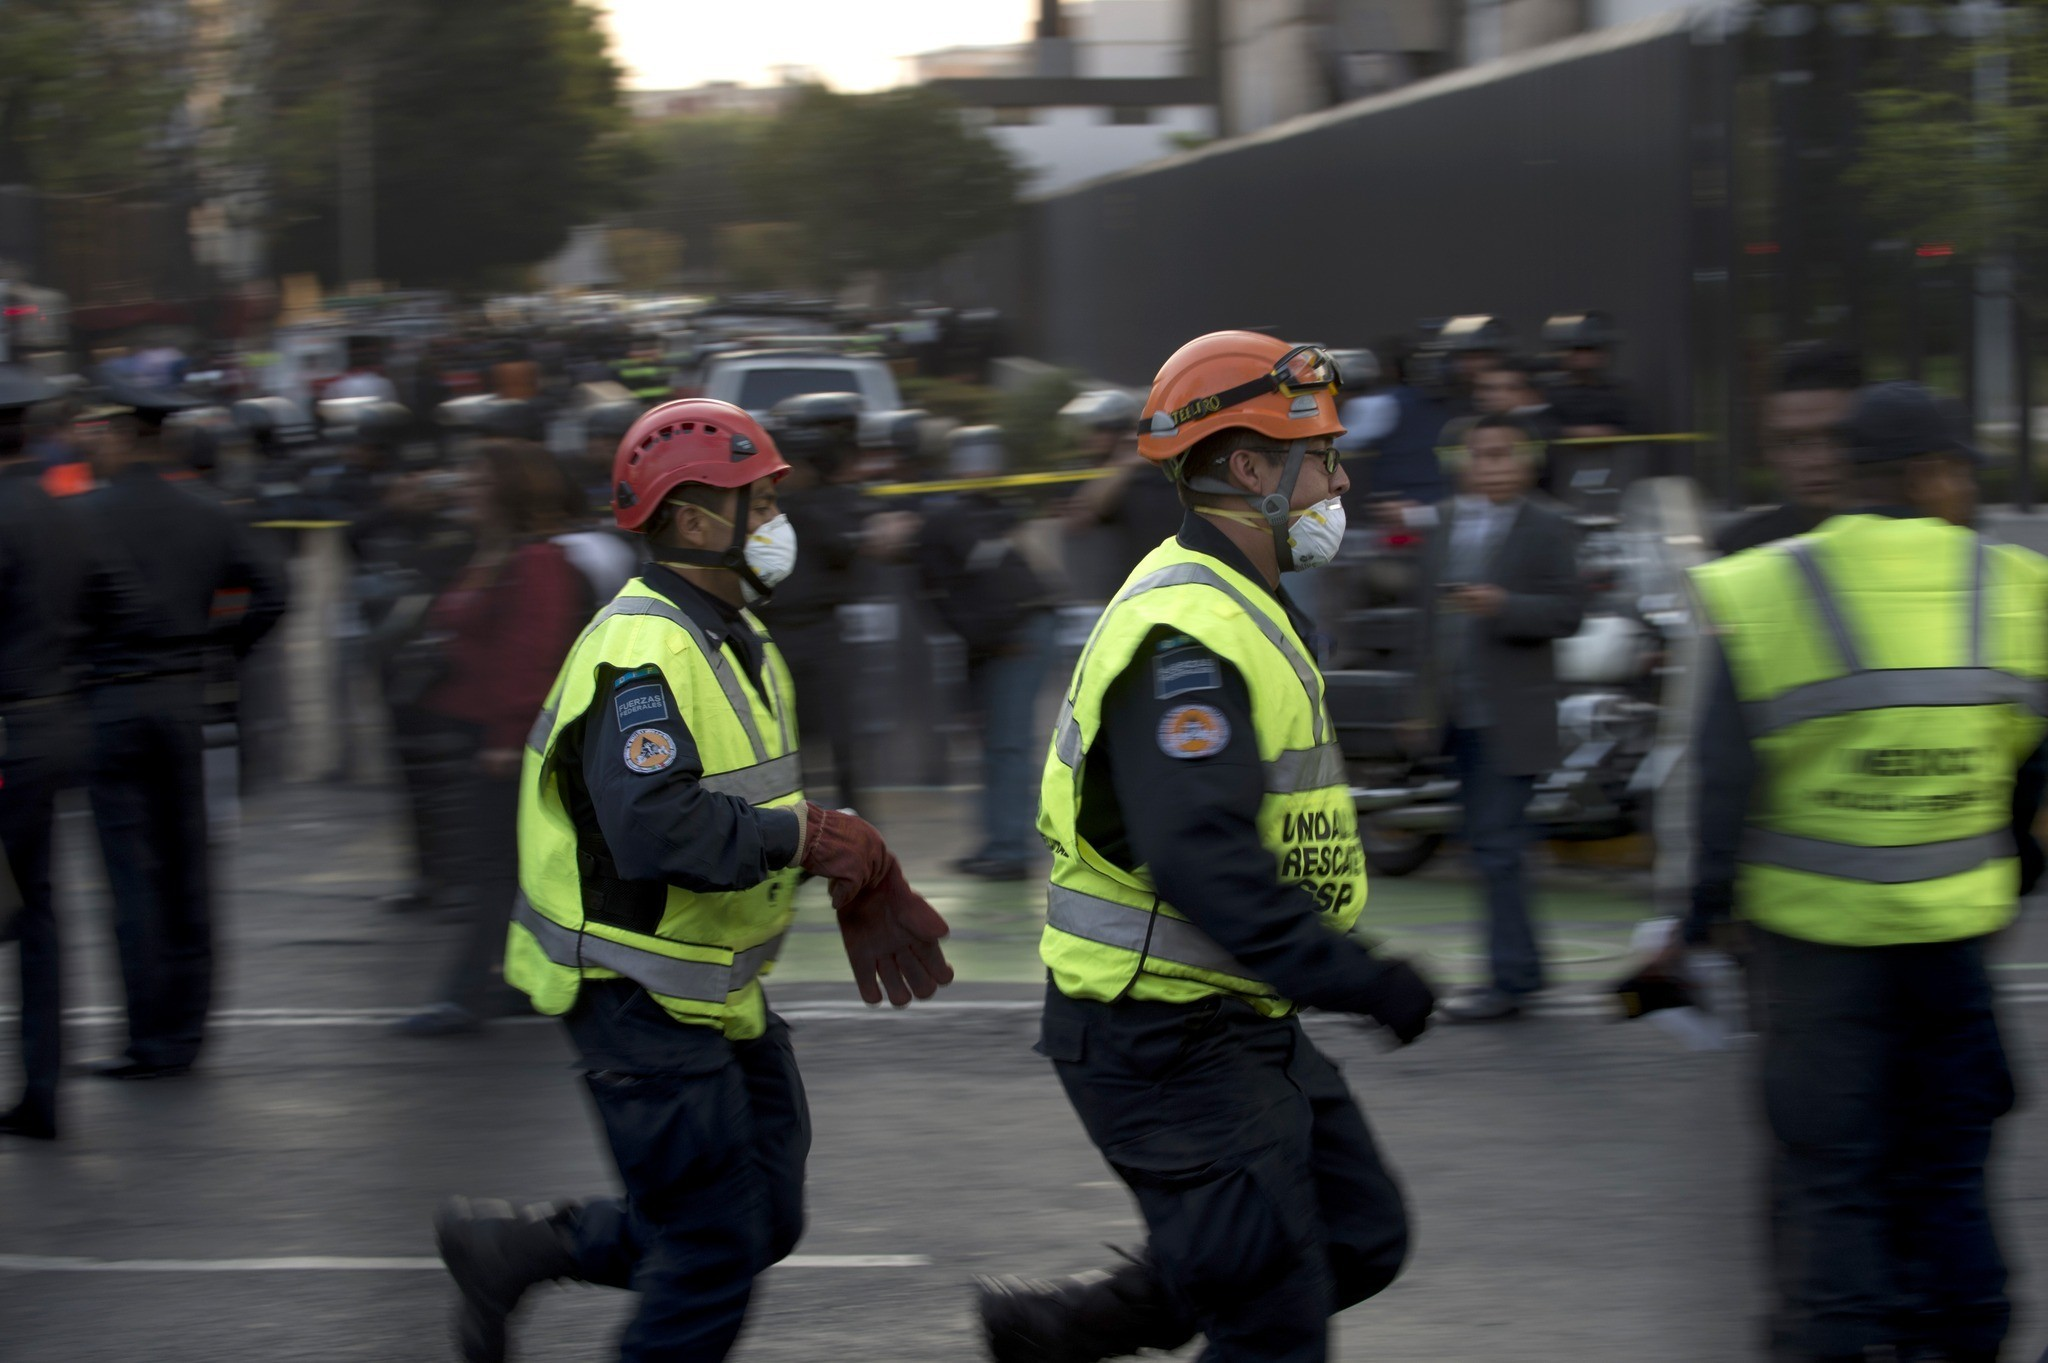 Pemex explosion in Mexico - Rescue workers